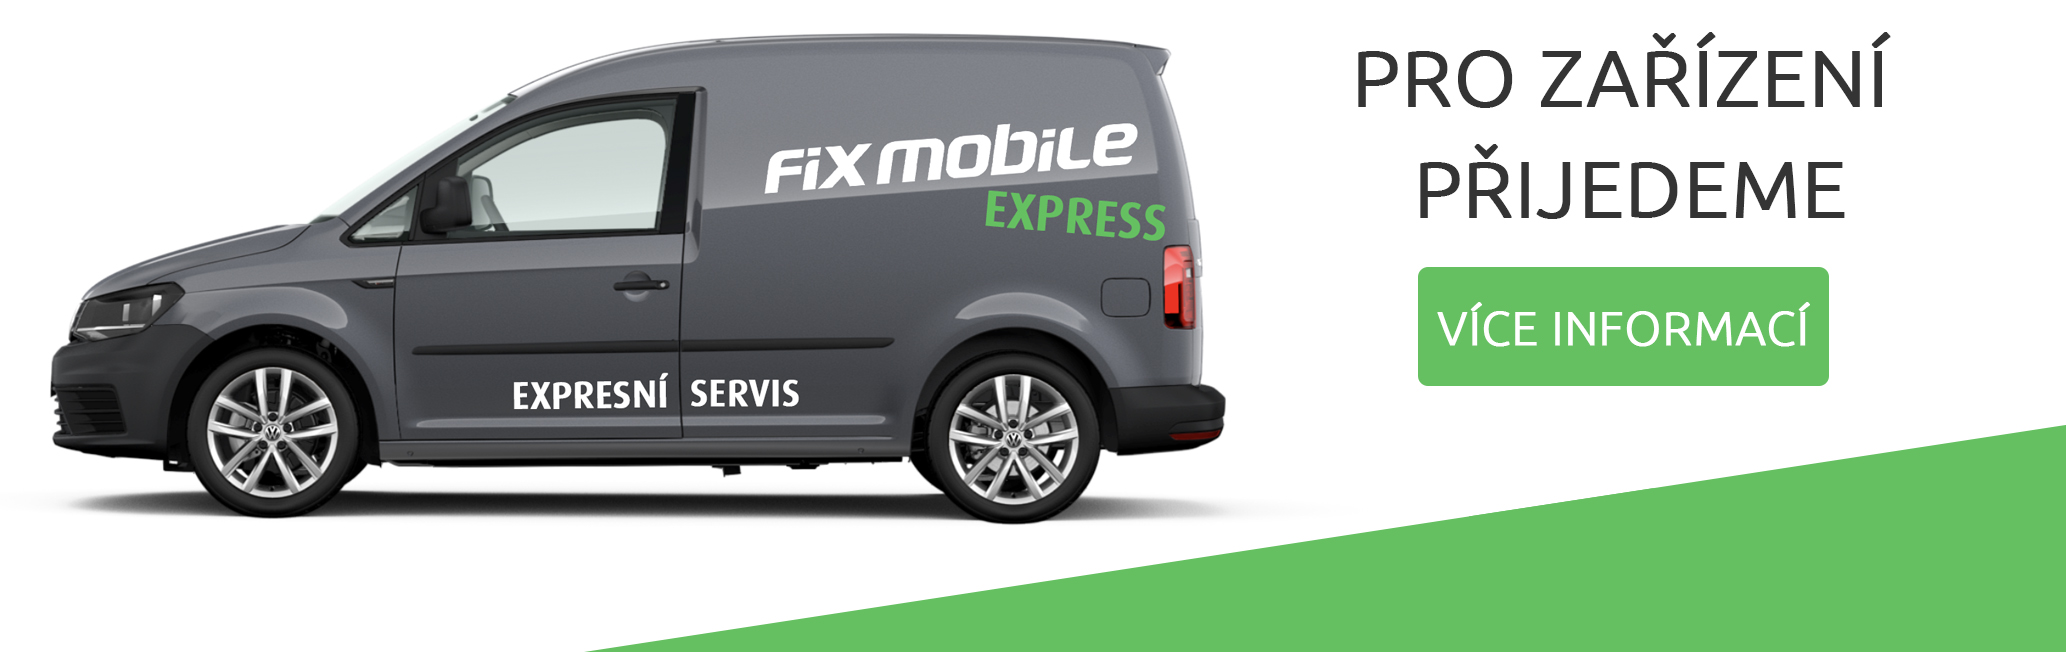 svoz_fixmobile